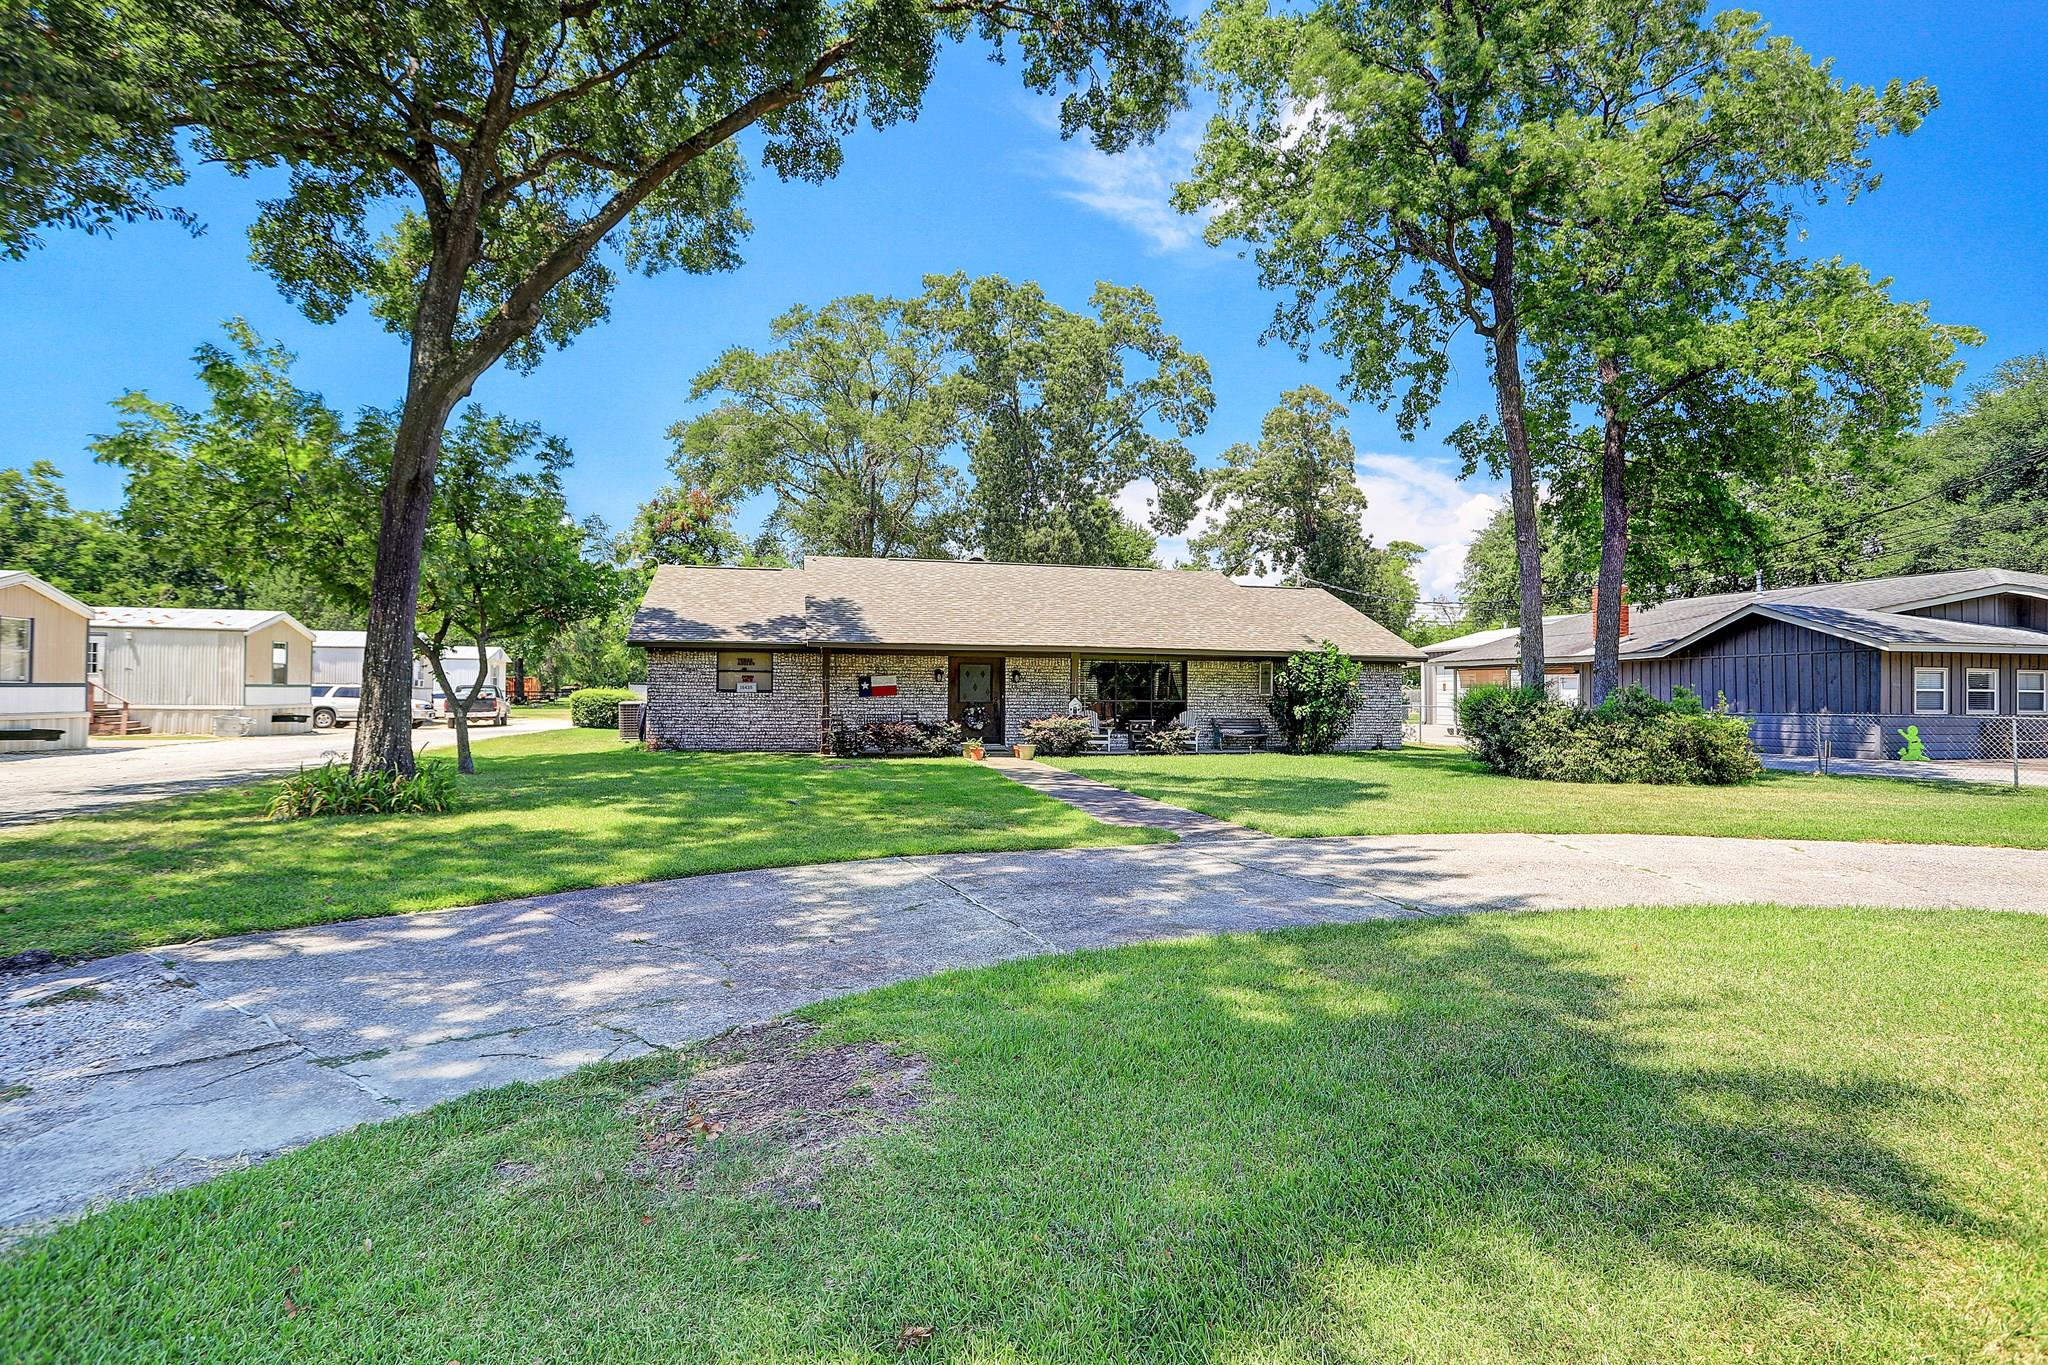 15435 N Brentwood Street Property Photo - Channelview, TX real estate listing